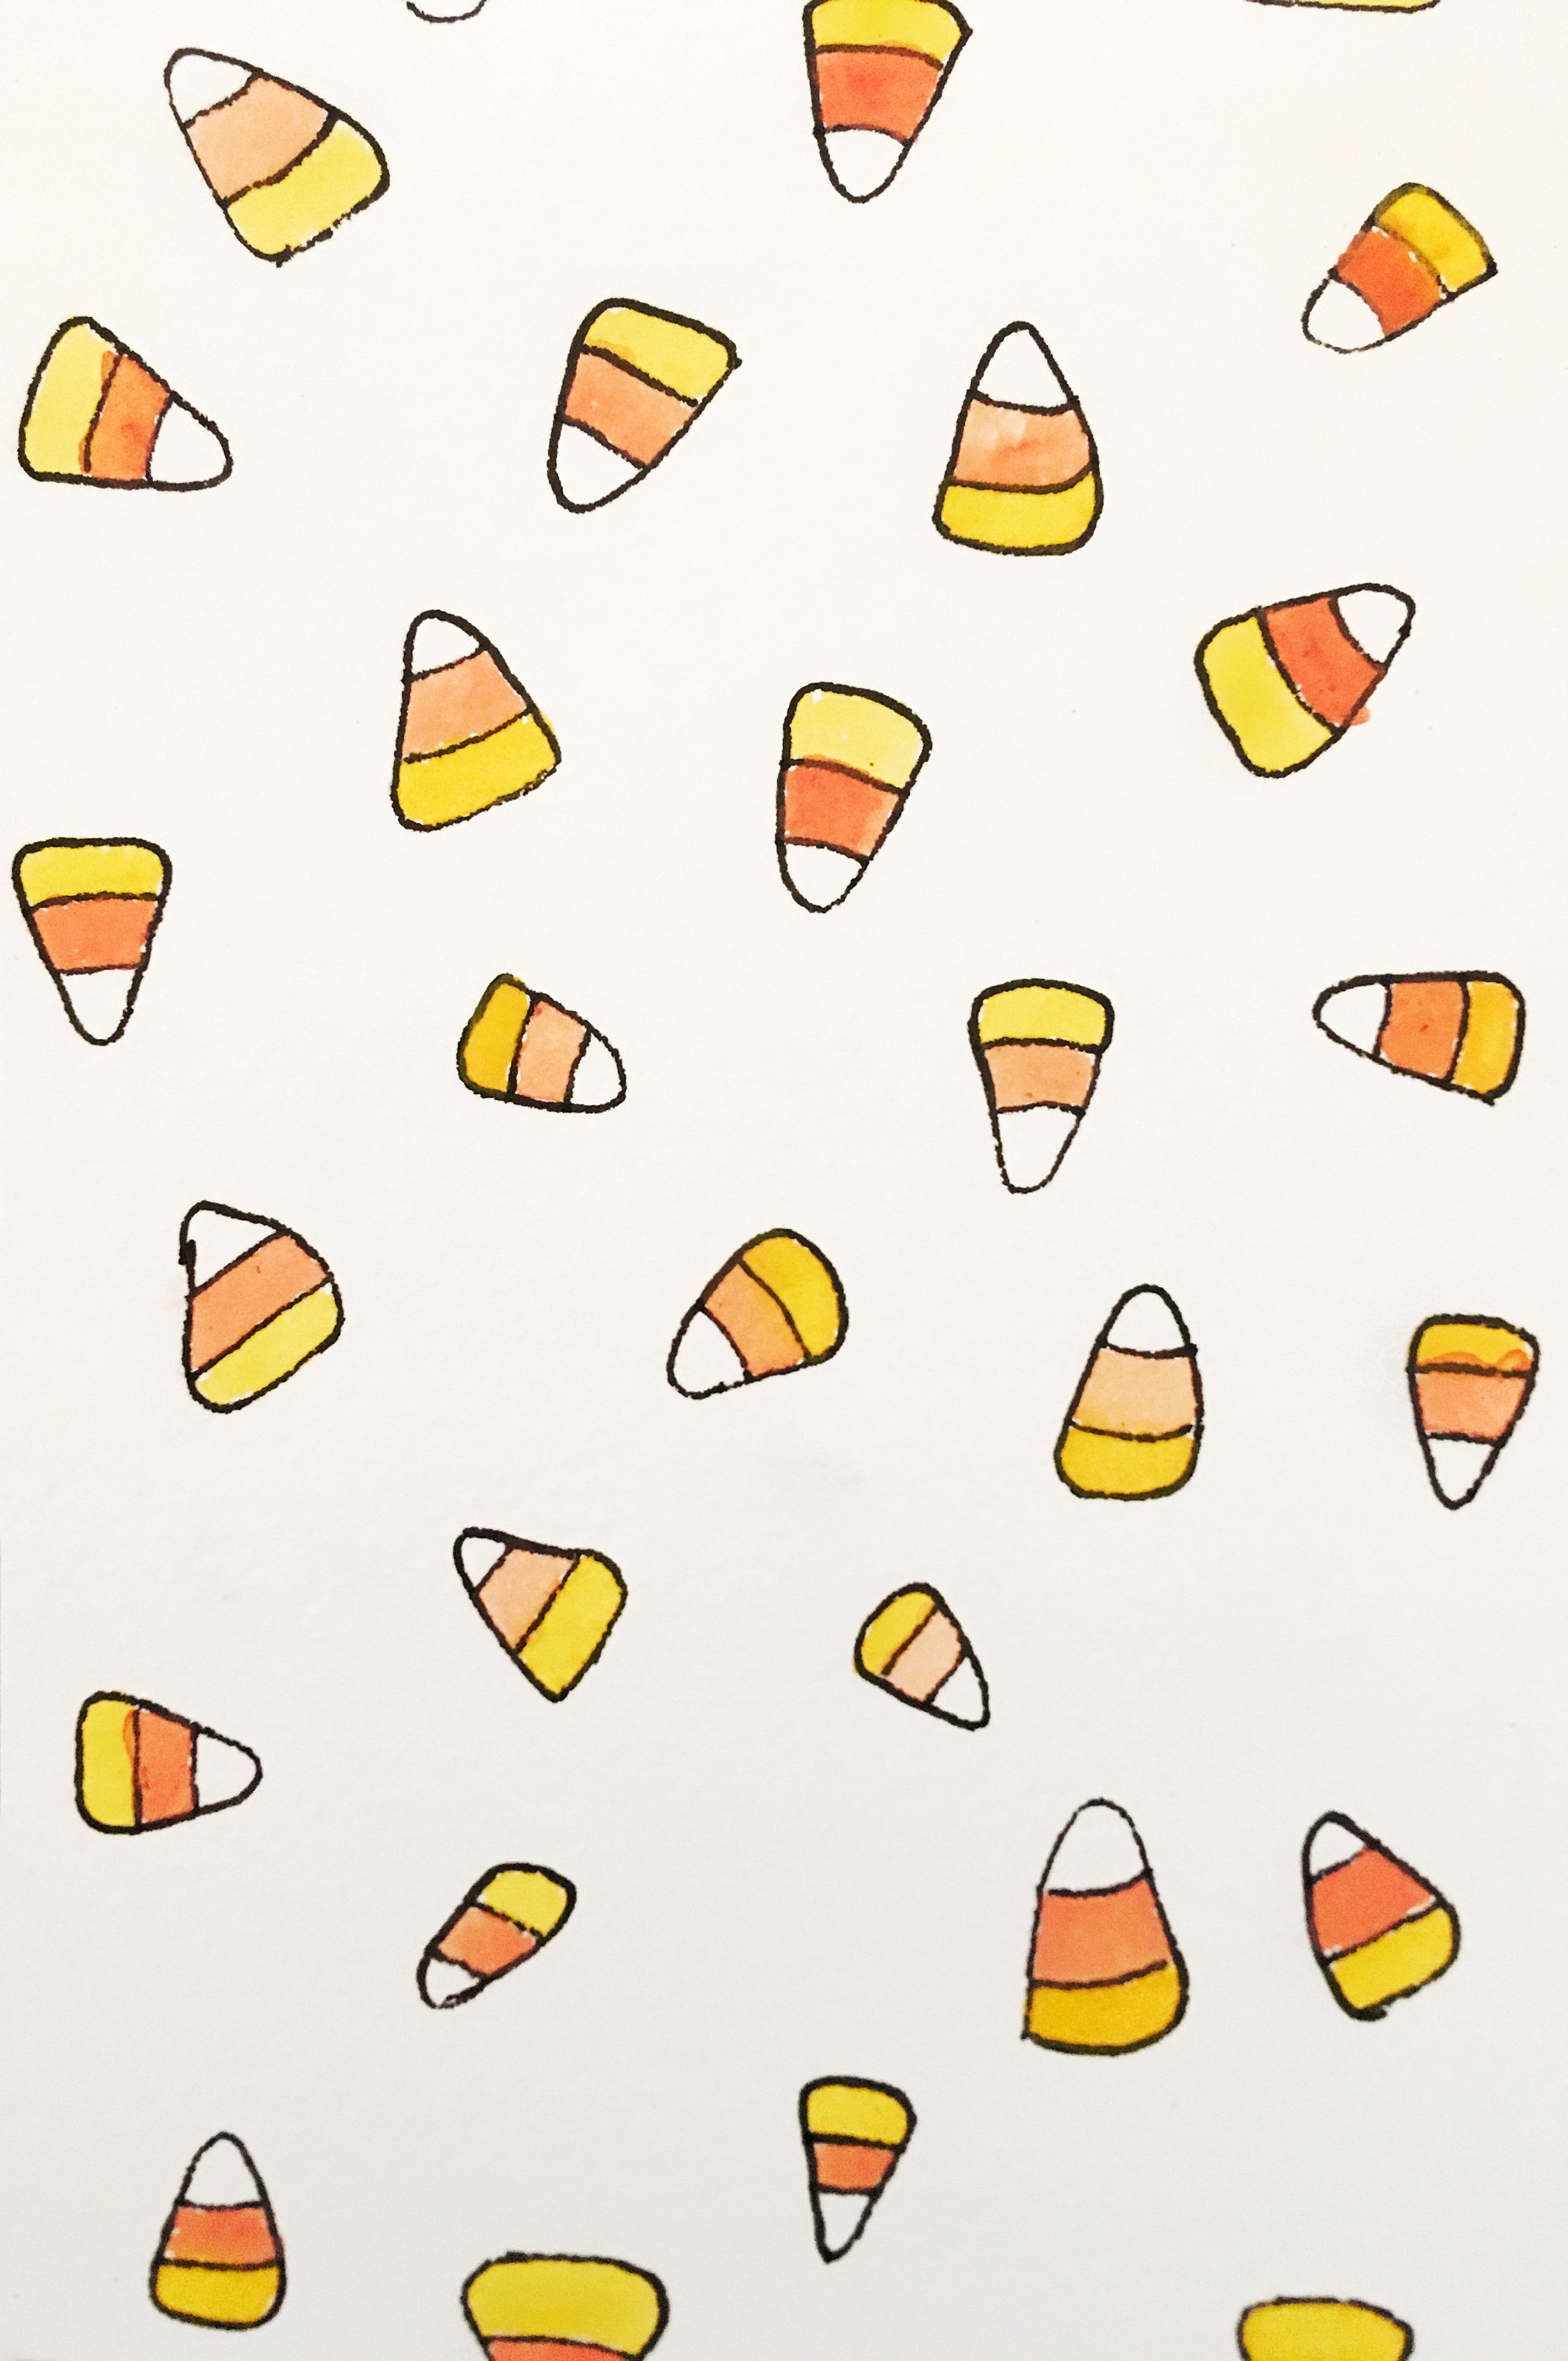 Candy corn iPhone watercolor wallpaper #fallbackgrounds